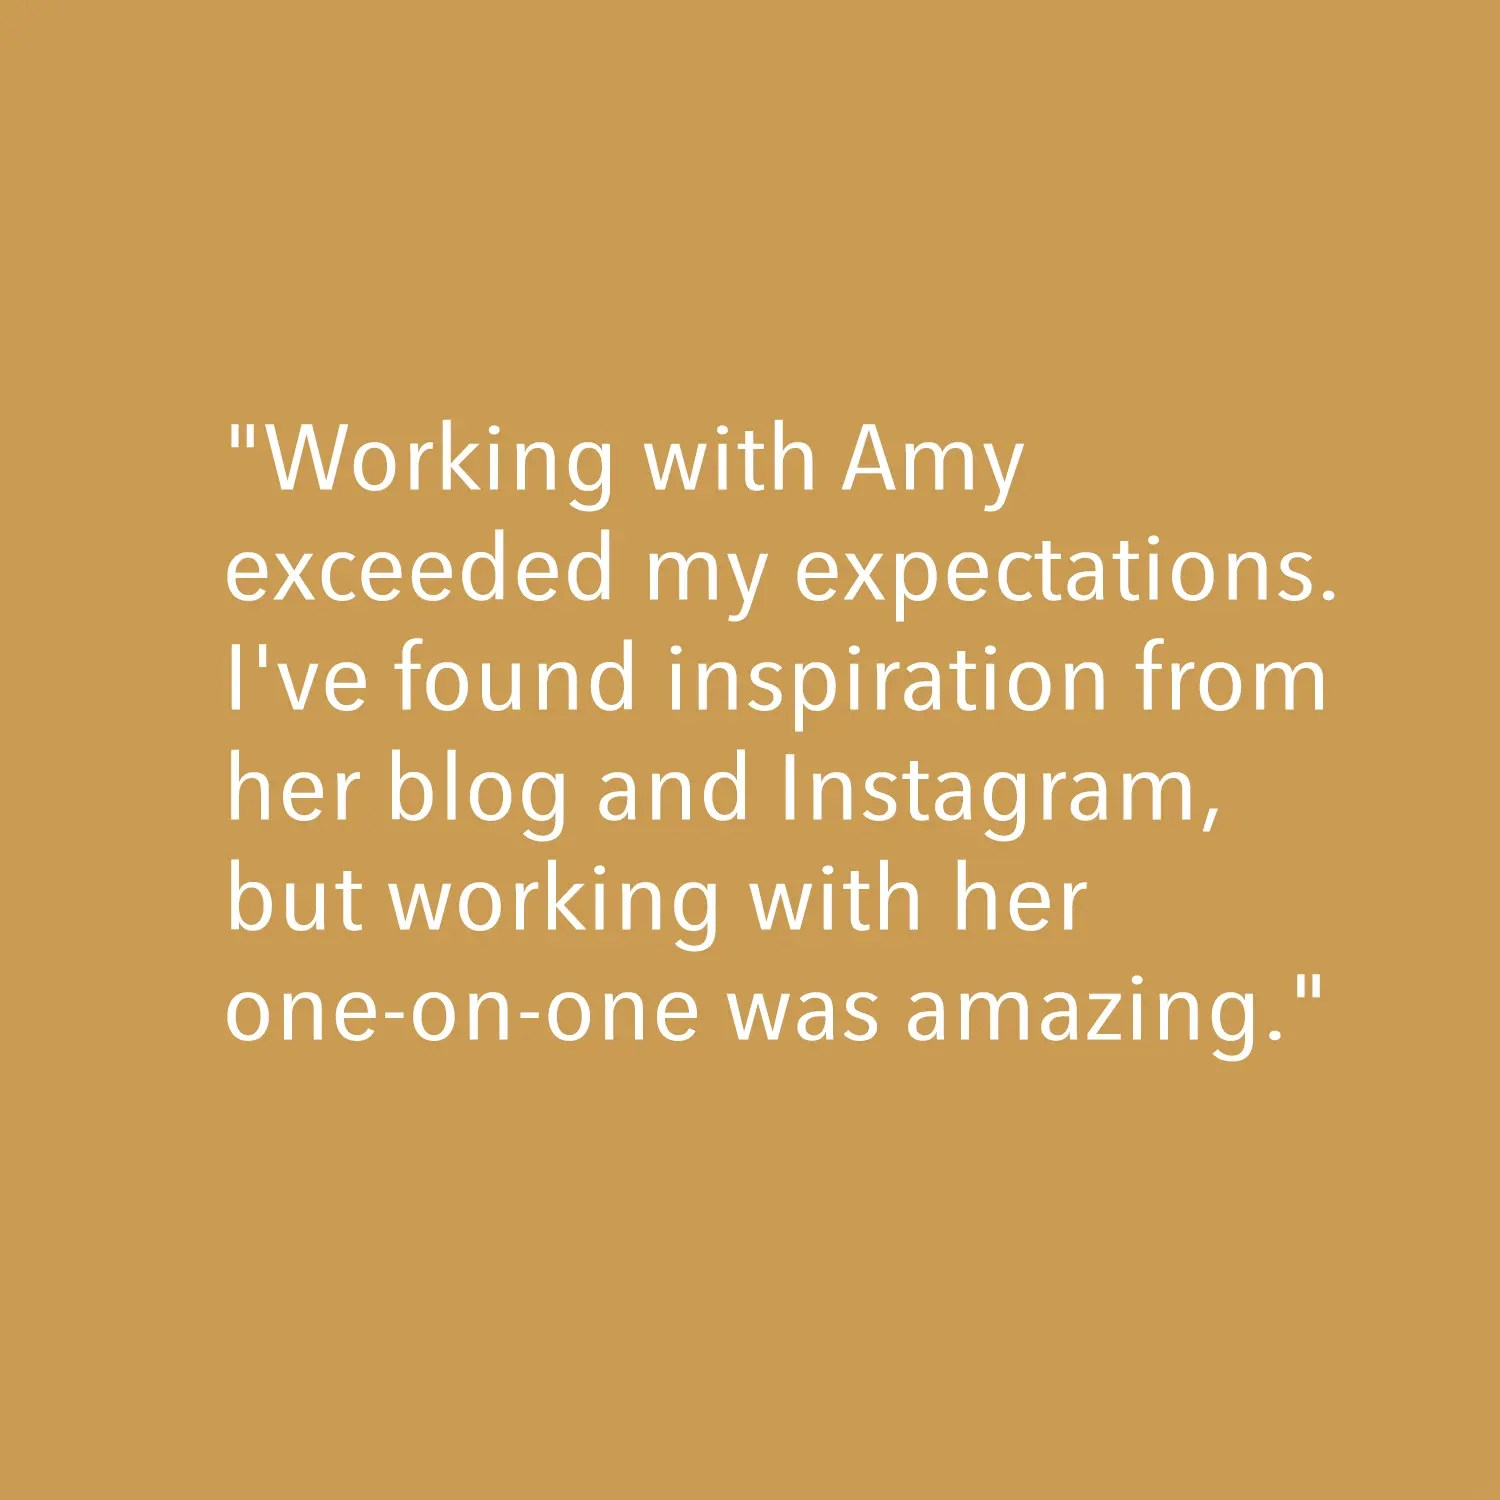 Testimonial - Working with Amy exceeded...